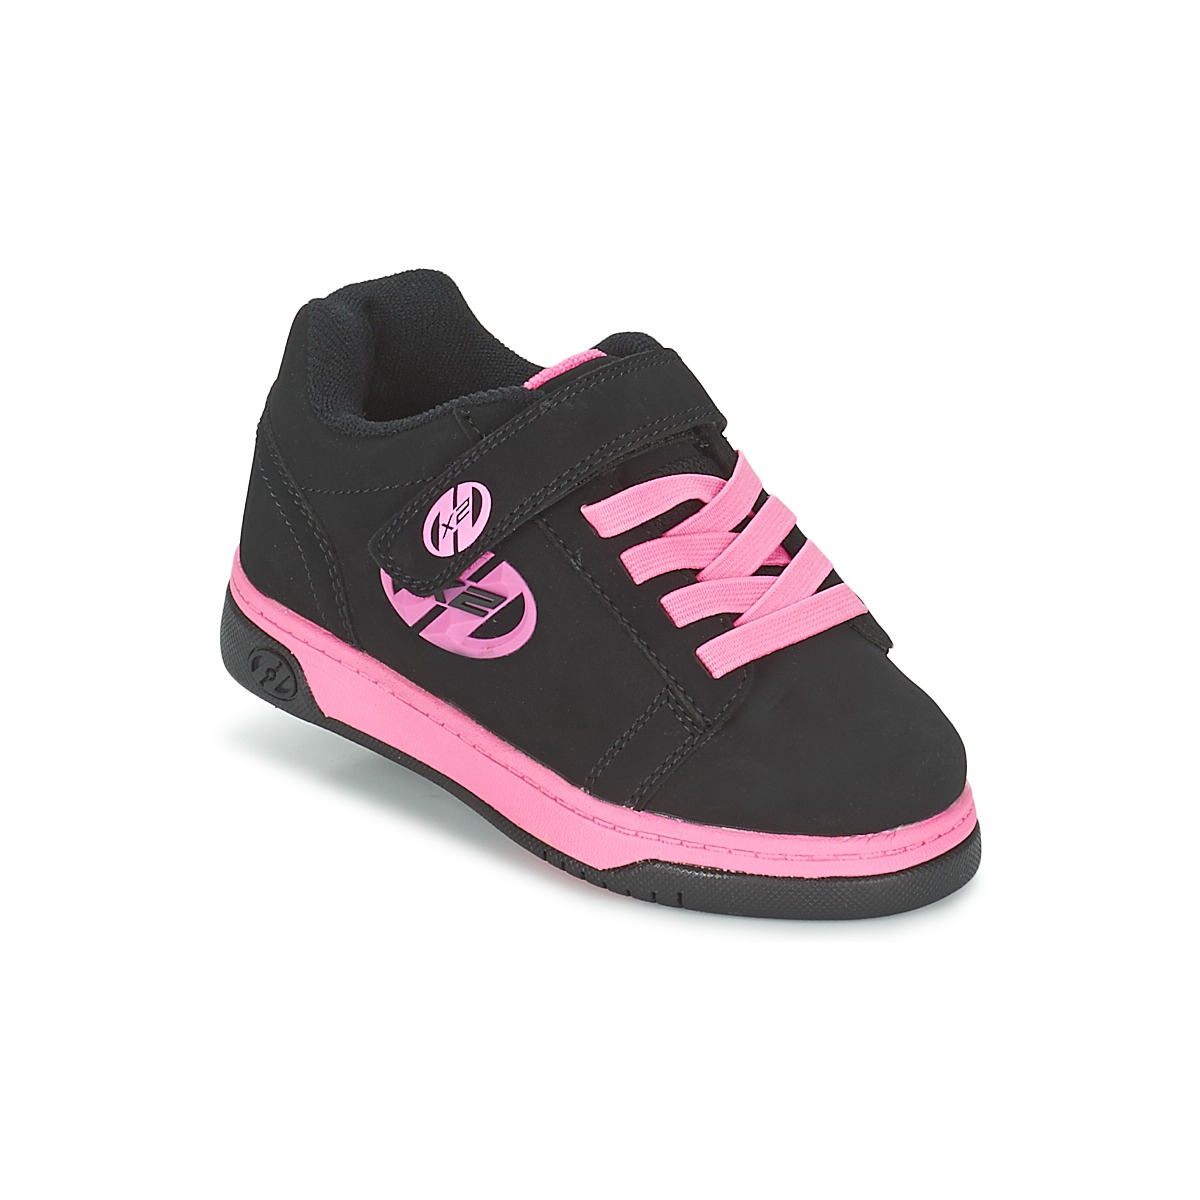 heelys dual up noir rose chaussure pas cher avec shoes. Black Bedroom Furniture Sets. Home Design Ideas